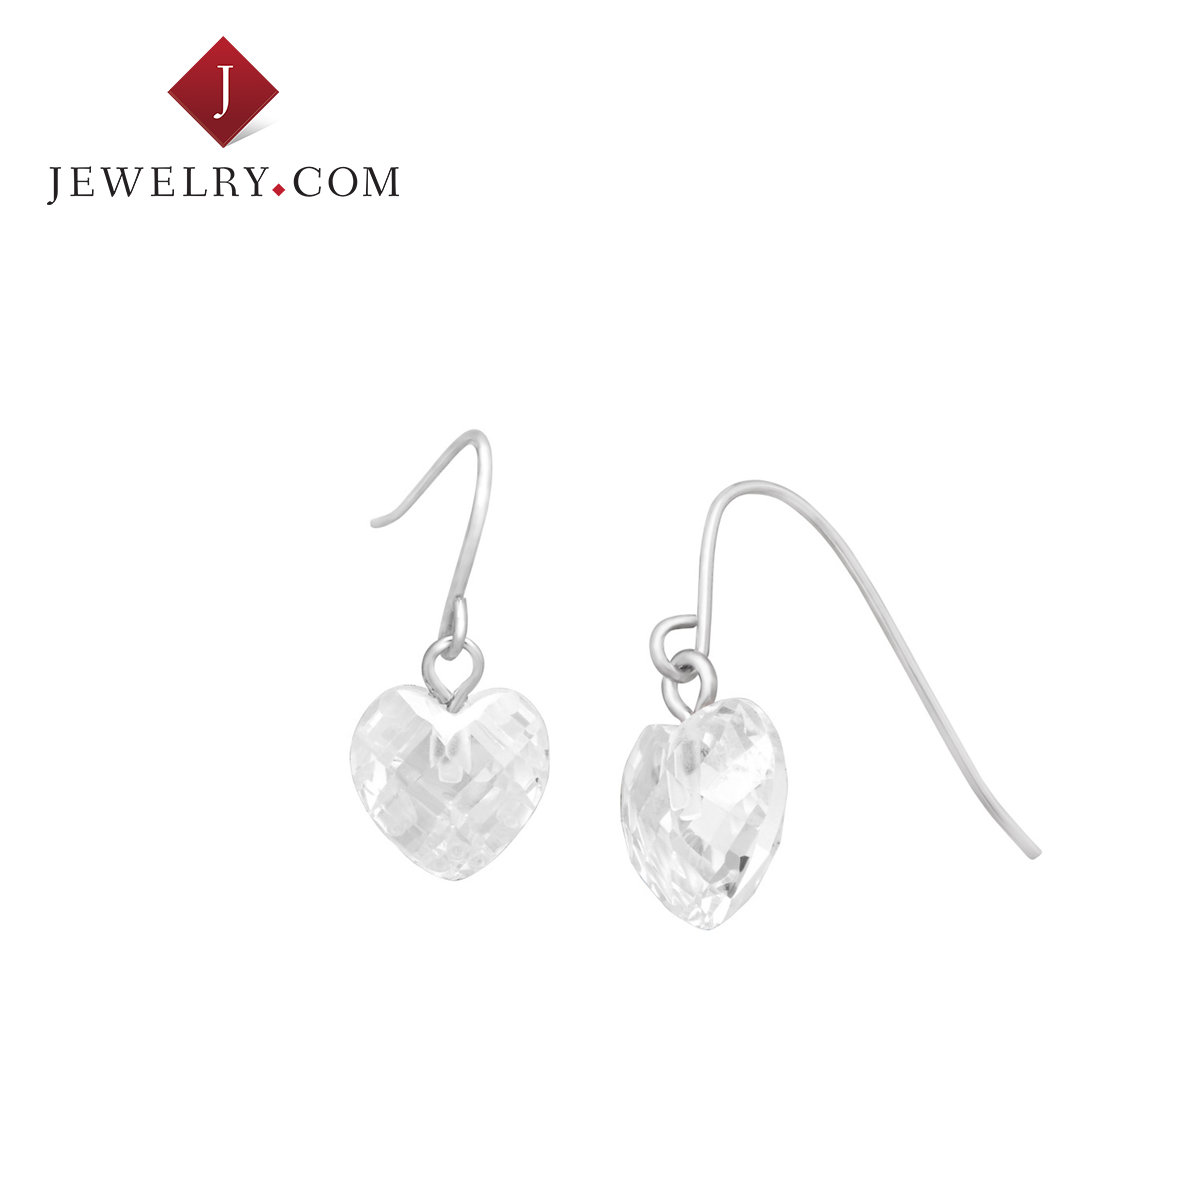 Jewelry.com official k platinum a-al2o3 baddeleyite beautiful romantic and fresh sweet heart earrings female models